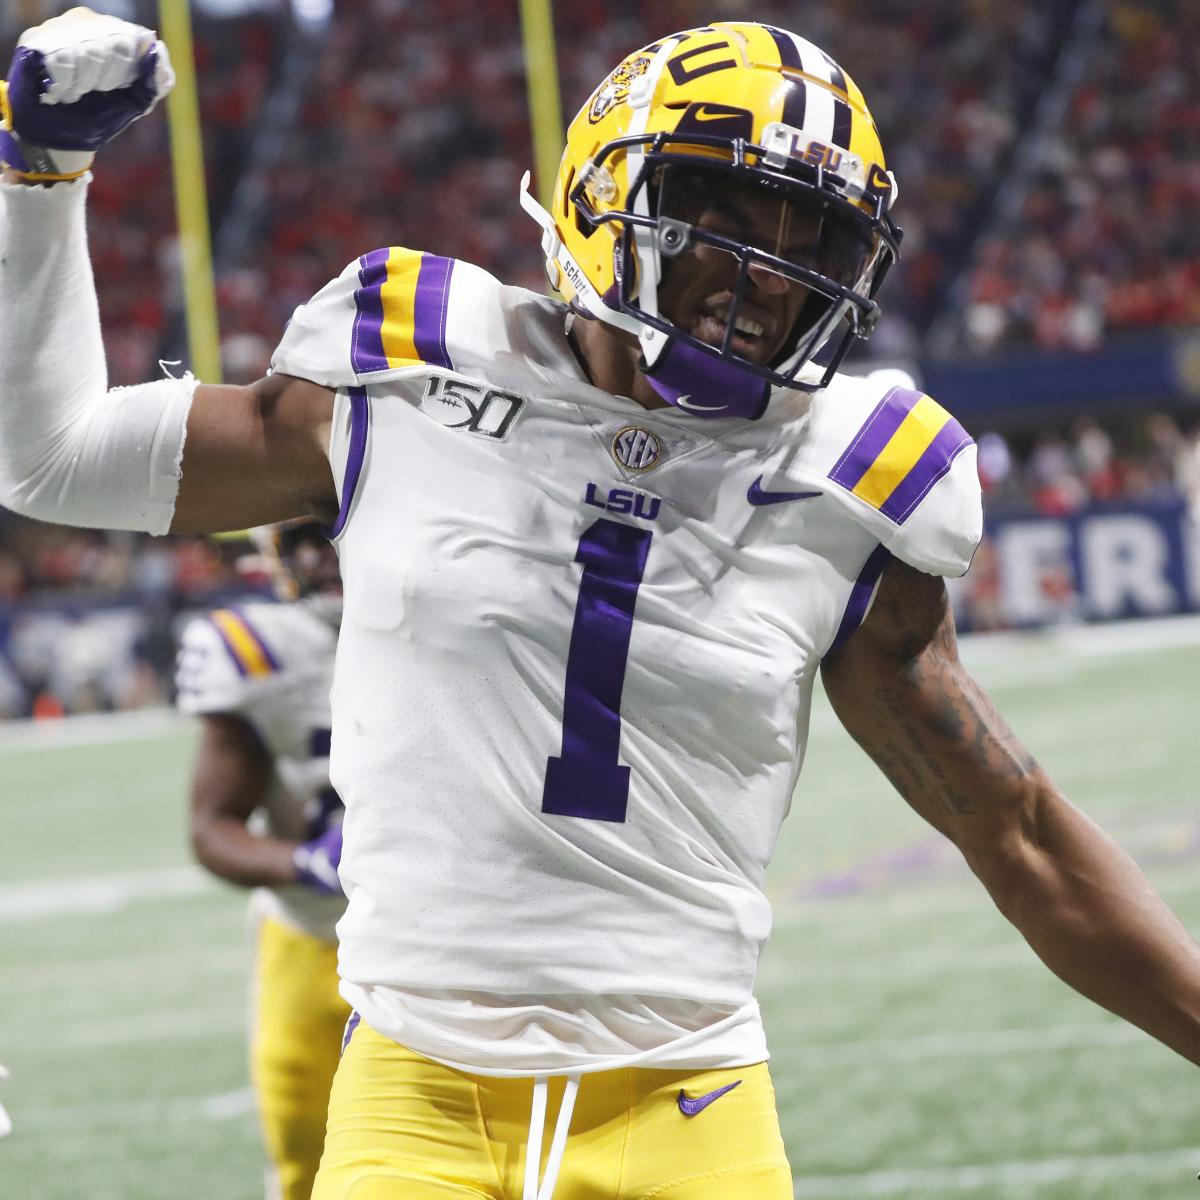 Todd McShay 2021 NFL Mock Draft: Ja'Marr Chase to Eagles, DeVonta Smith to Lions